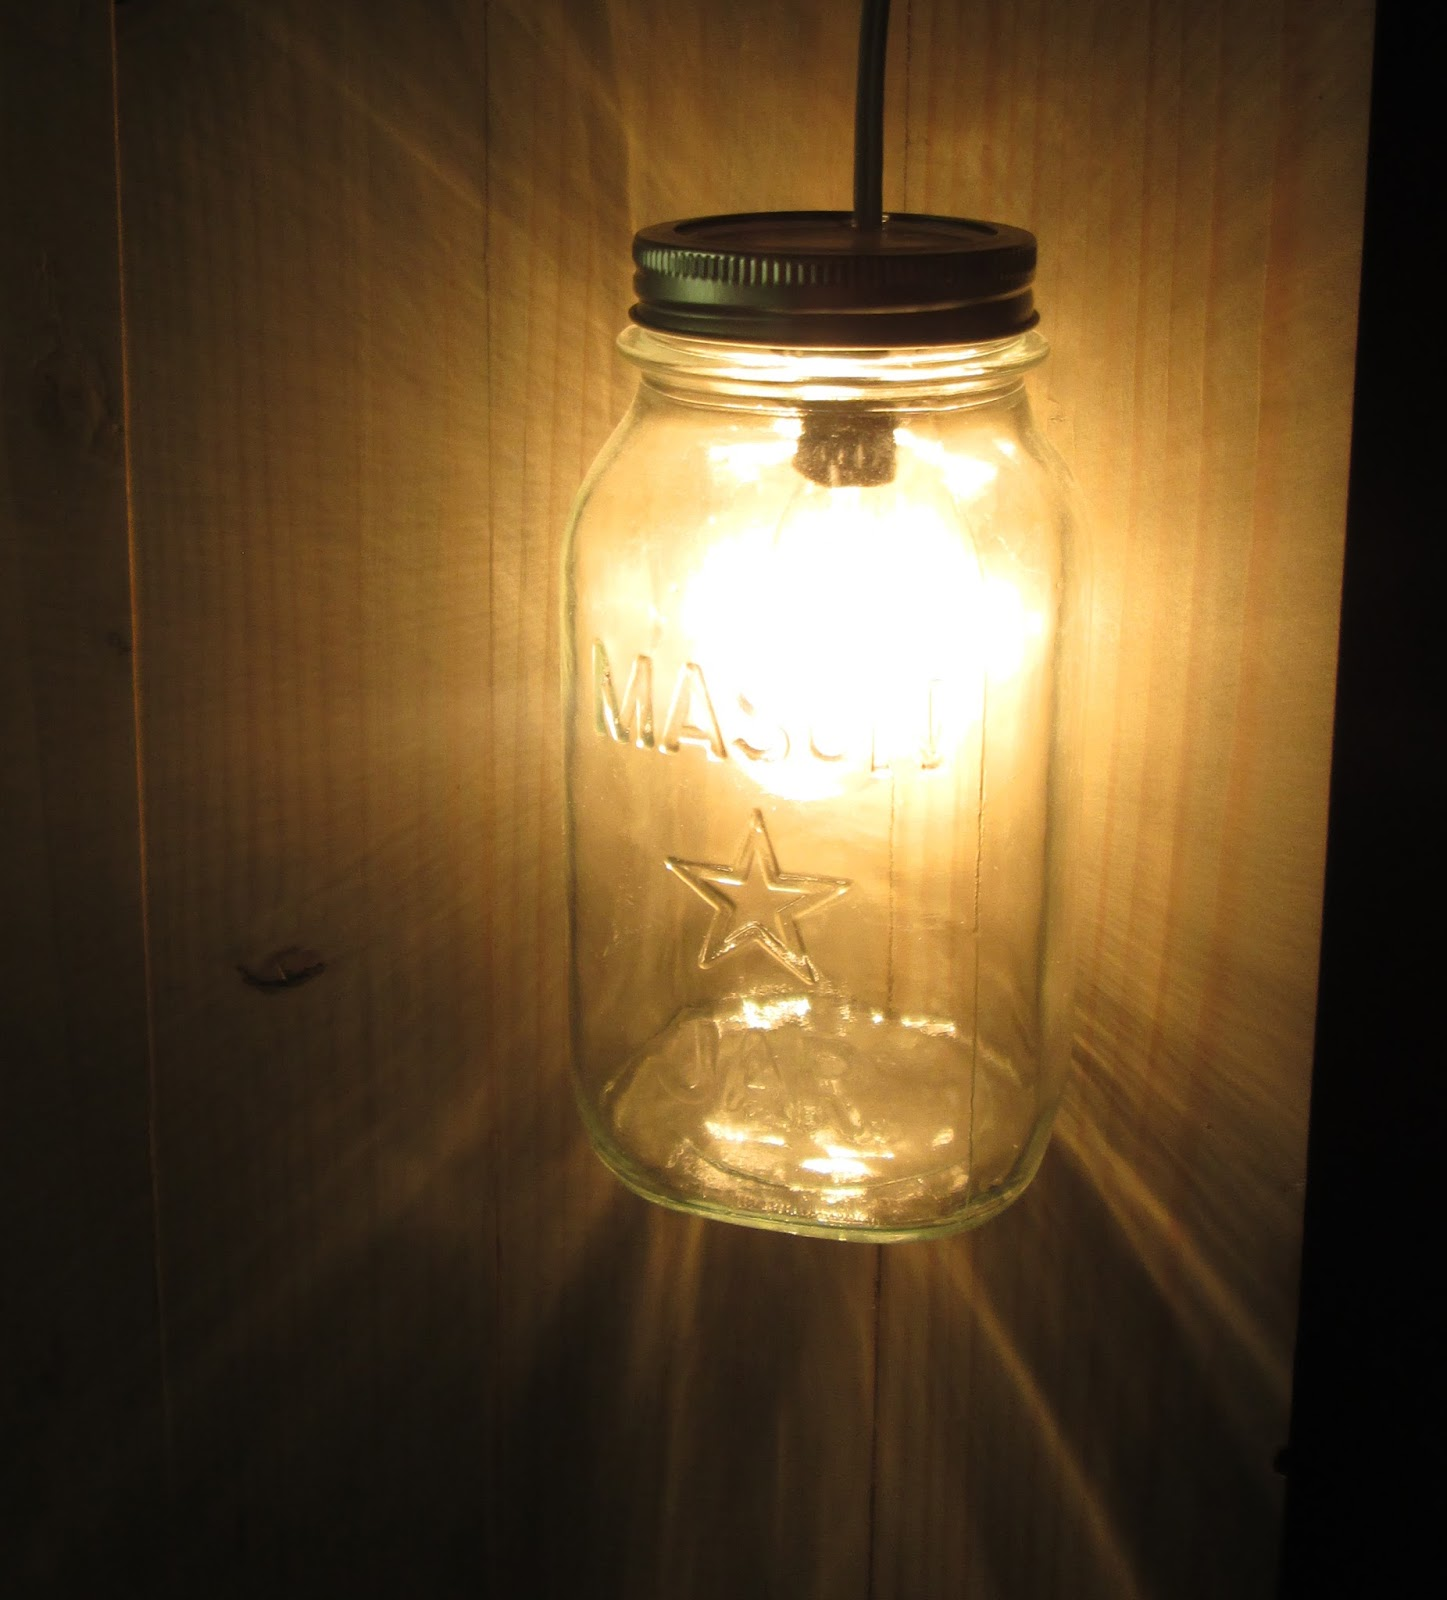 fender 39 s mom mason jar hanging light